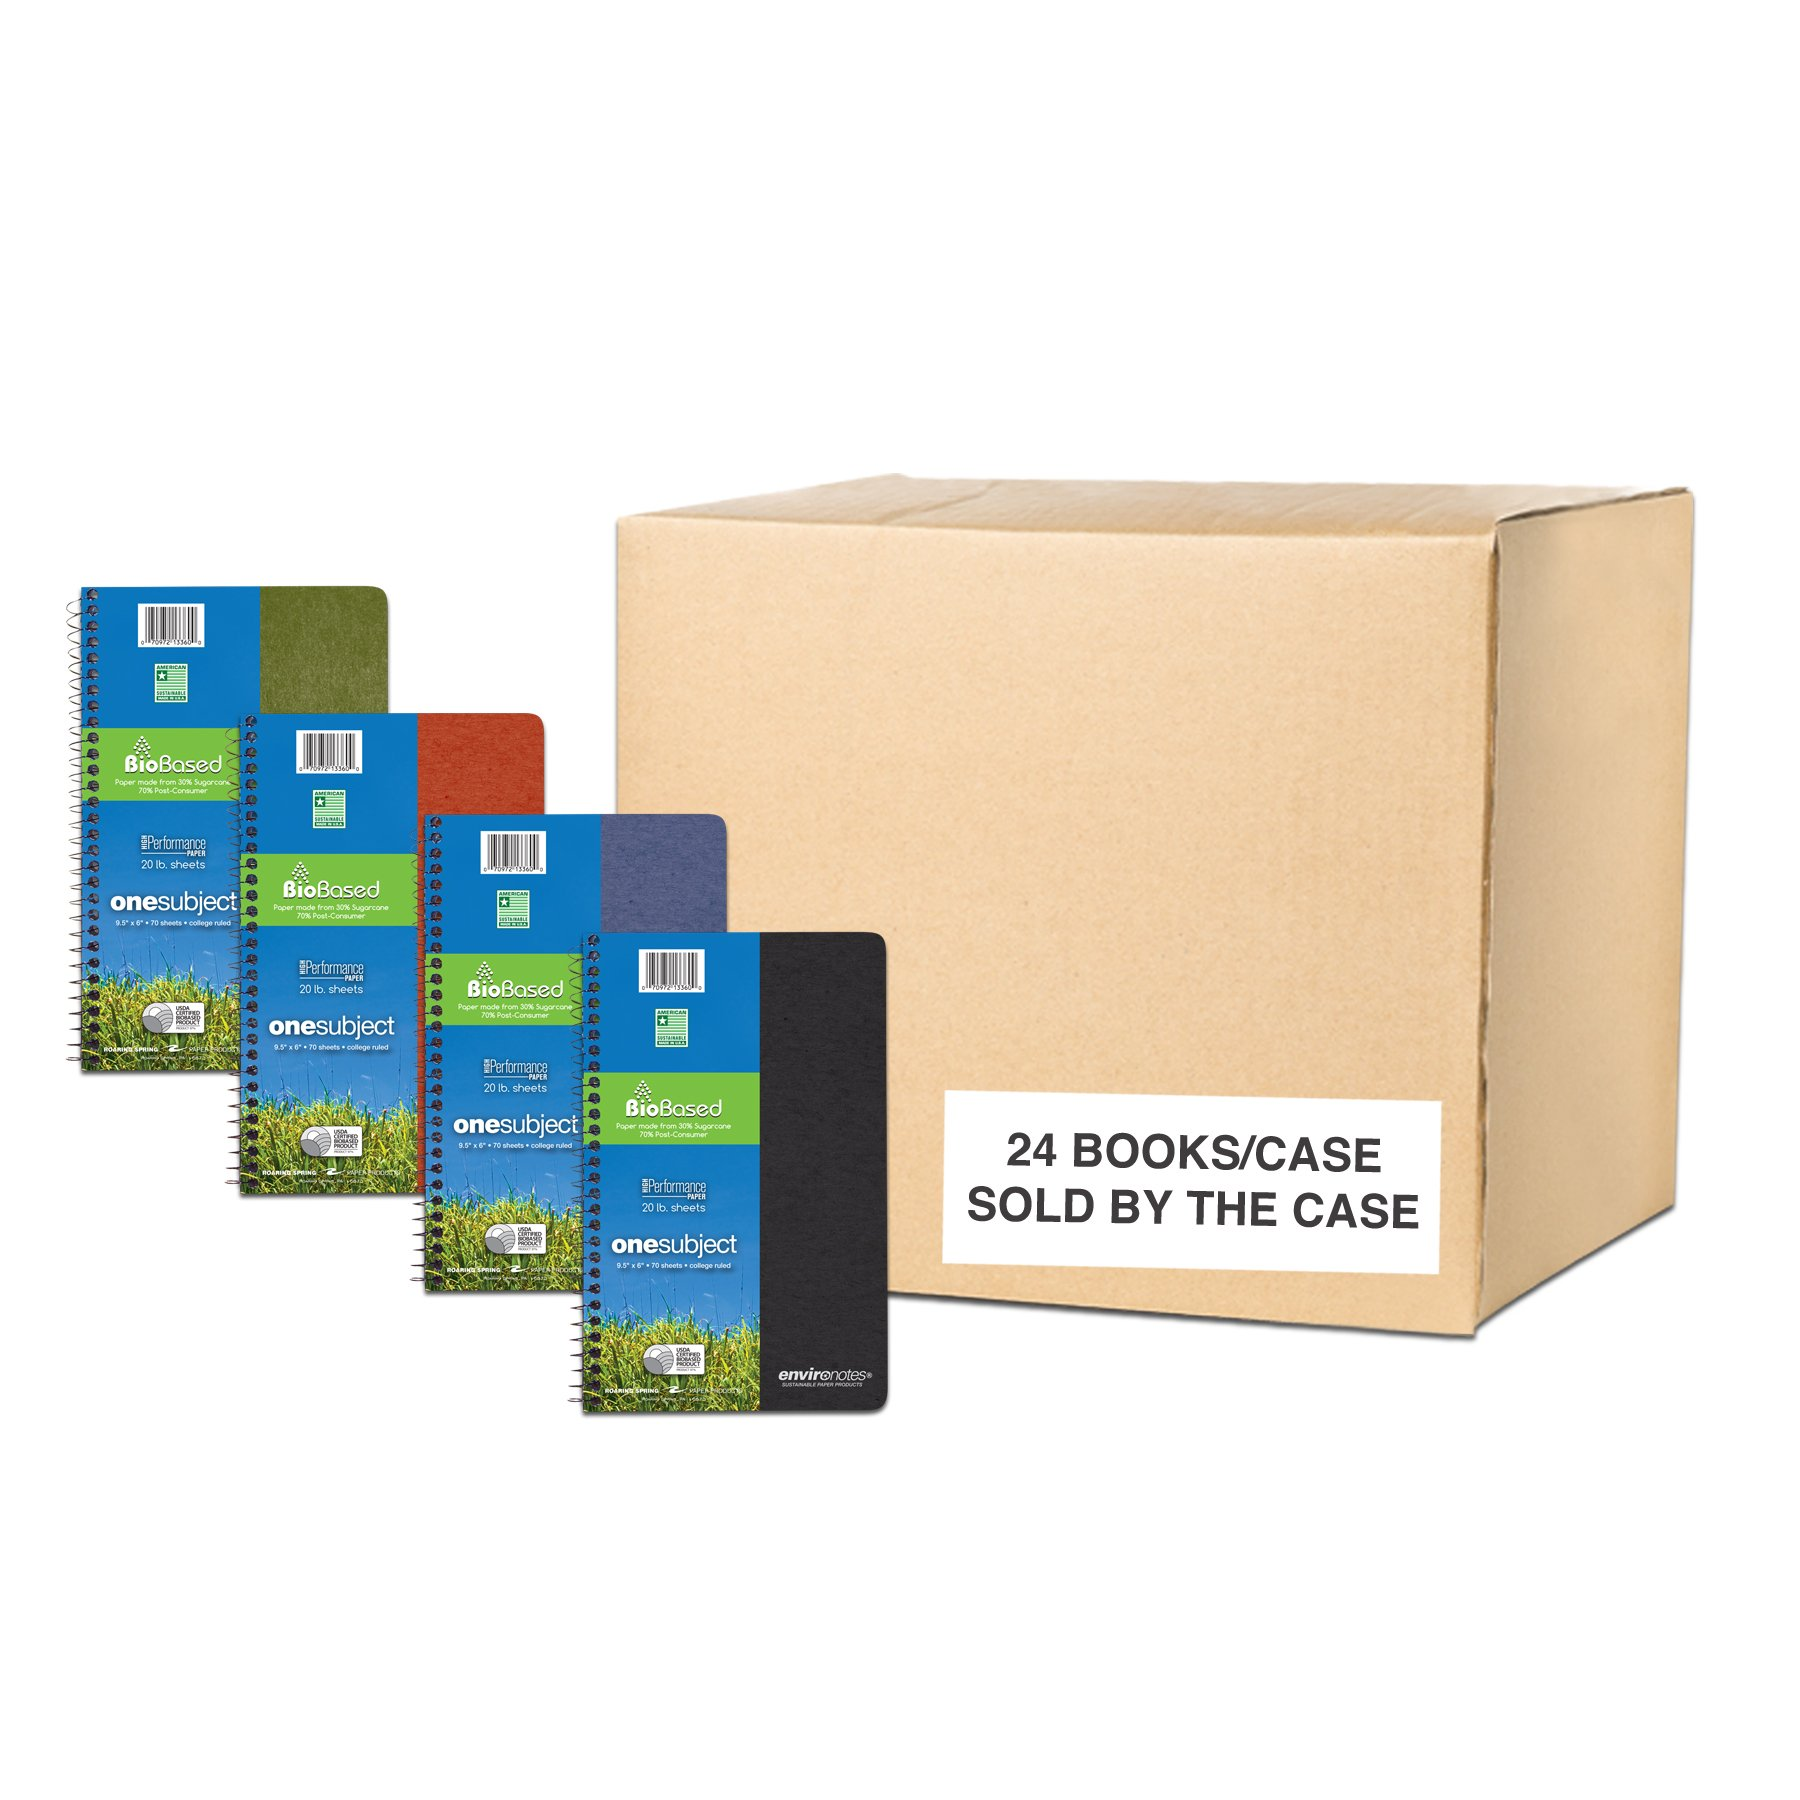 Environotes Case of 24 One Subject Wirebound Notebooks, 9.5''x6'', 80 sheets of 20# BioBase White Paper, Assorted Earthtone covers, College Ruled